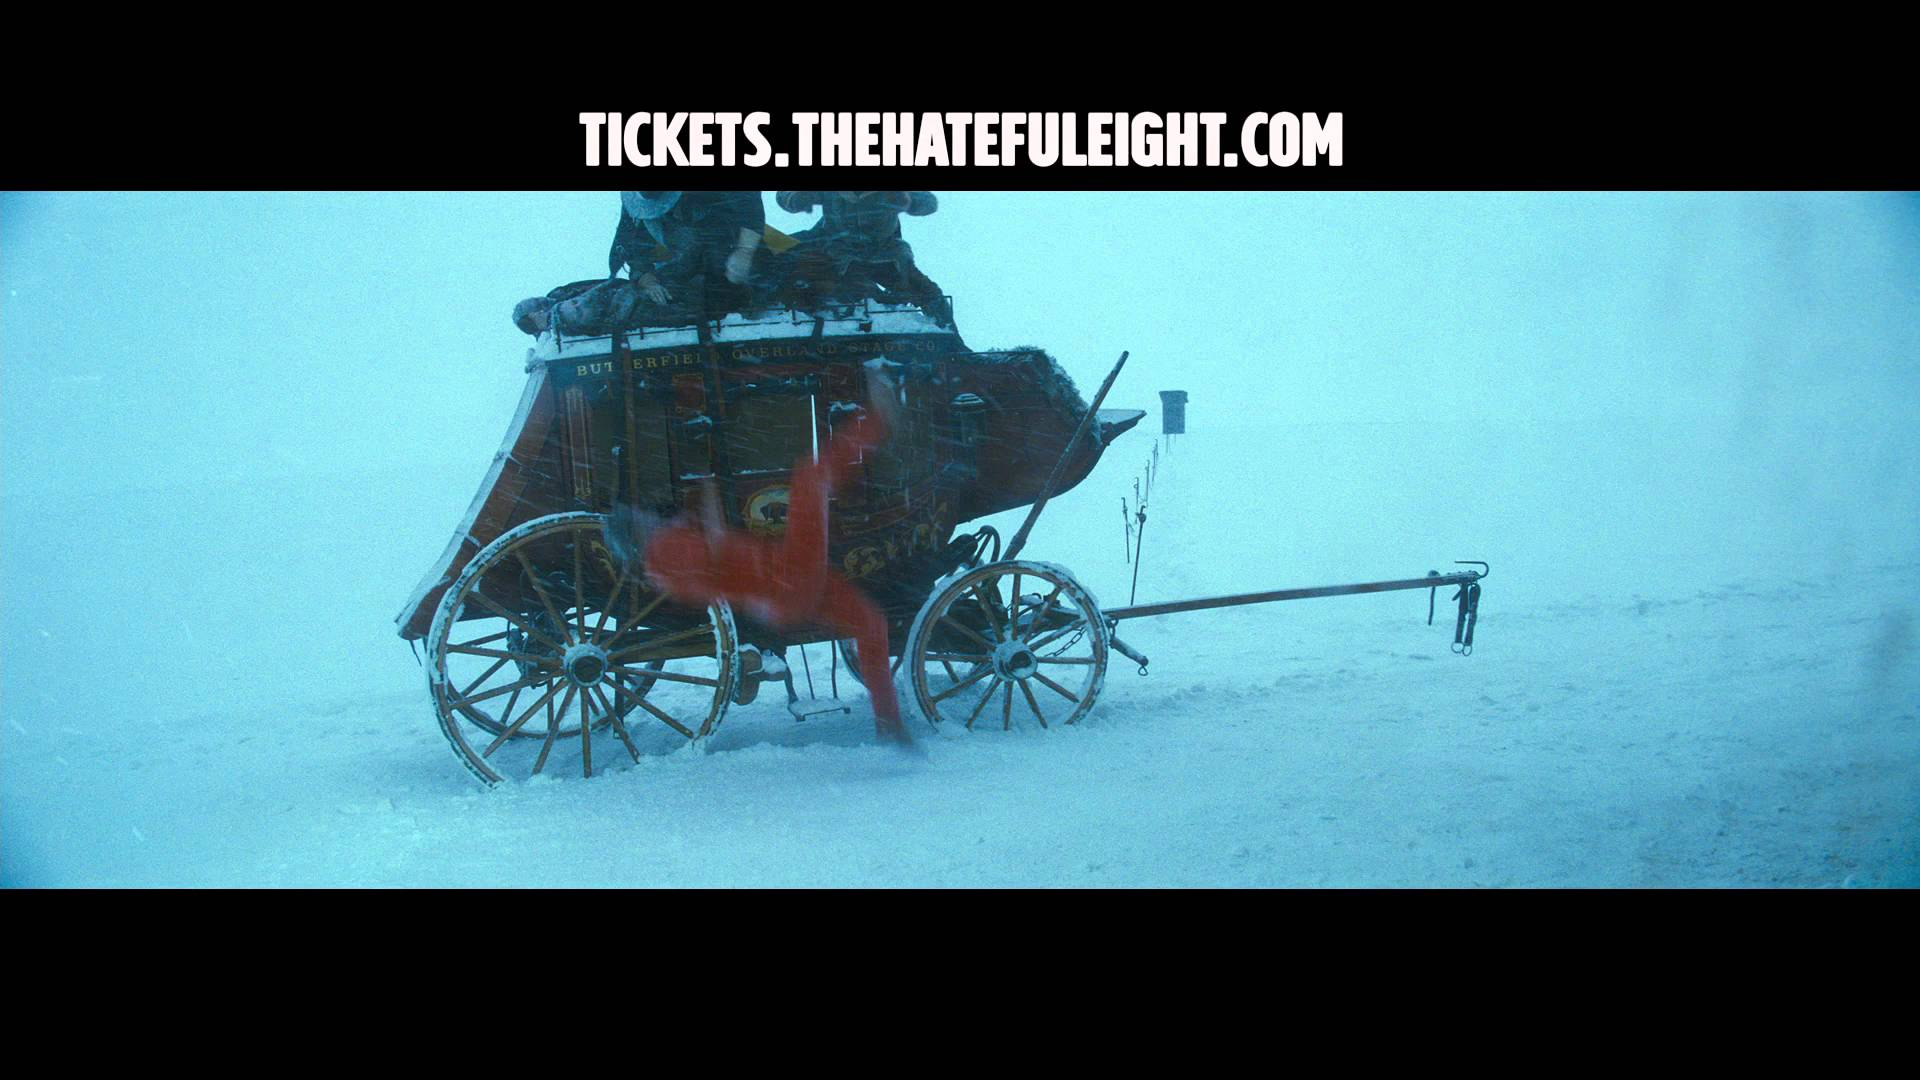 THE HATEFUL EIGHT – See it in Glorious 70mm